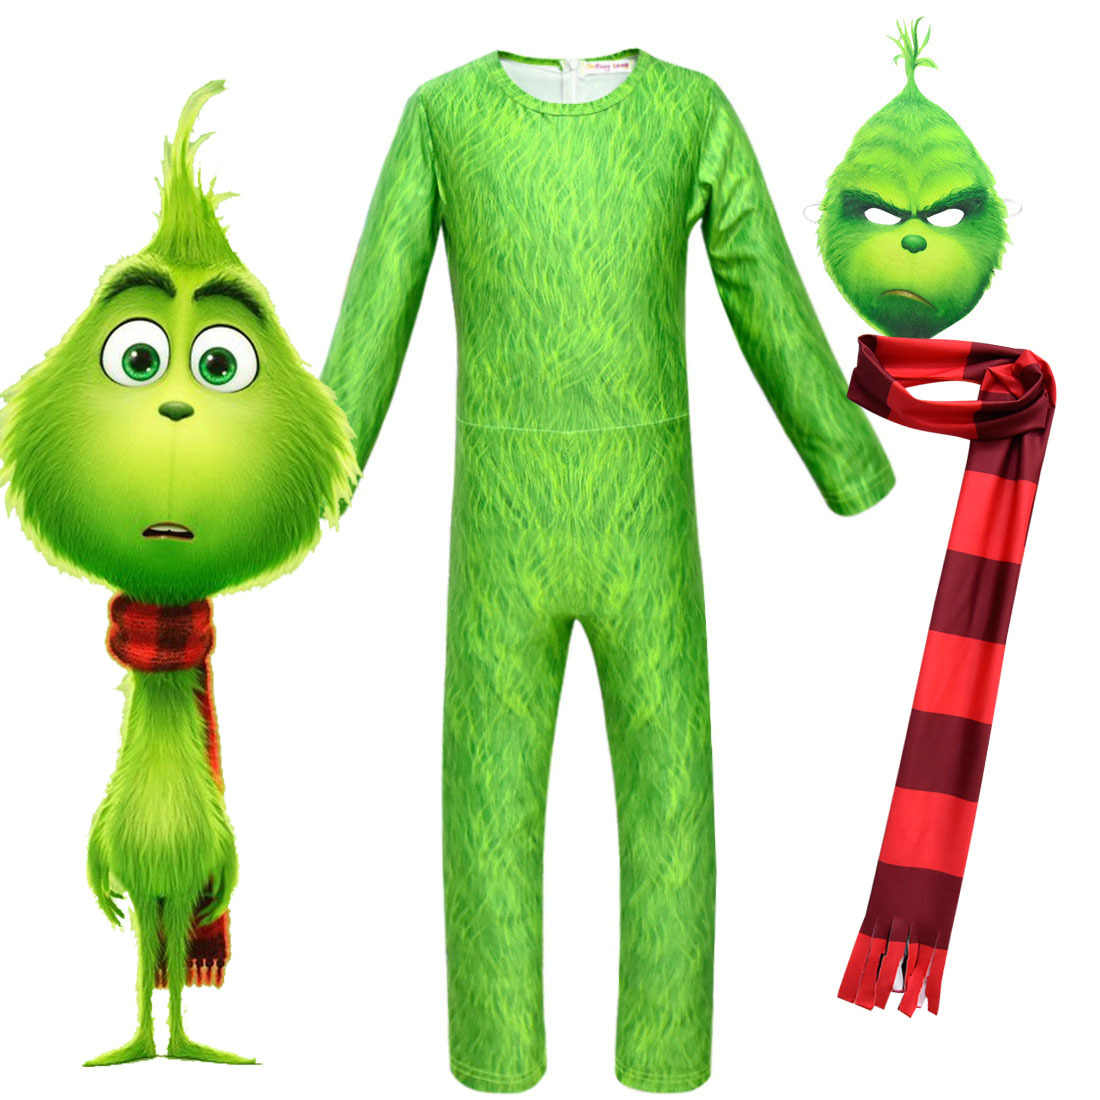 871438196f8a How The Grinch Stole The Grinch Cosplay Costume for Kids Halloween Girls  Boys Grinch Cartoon Jumpsuit